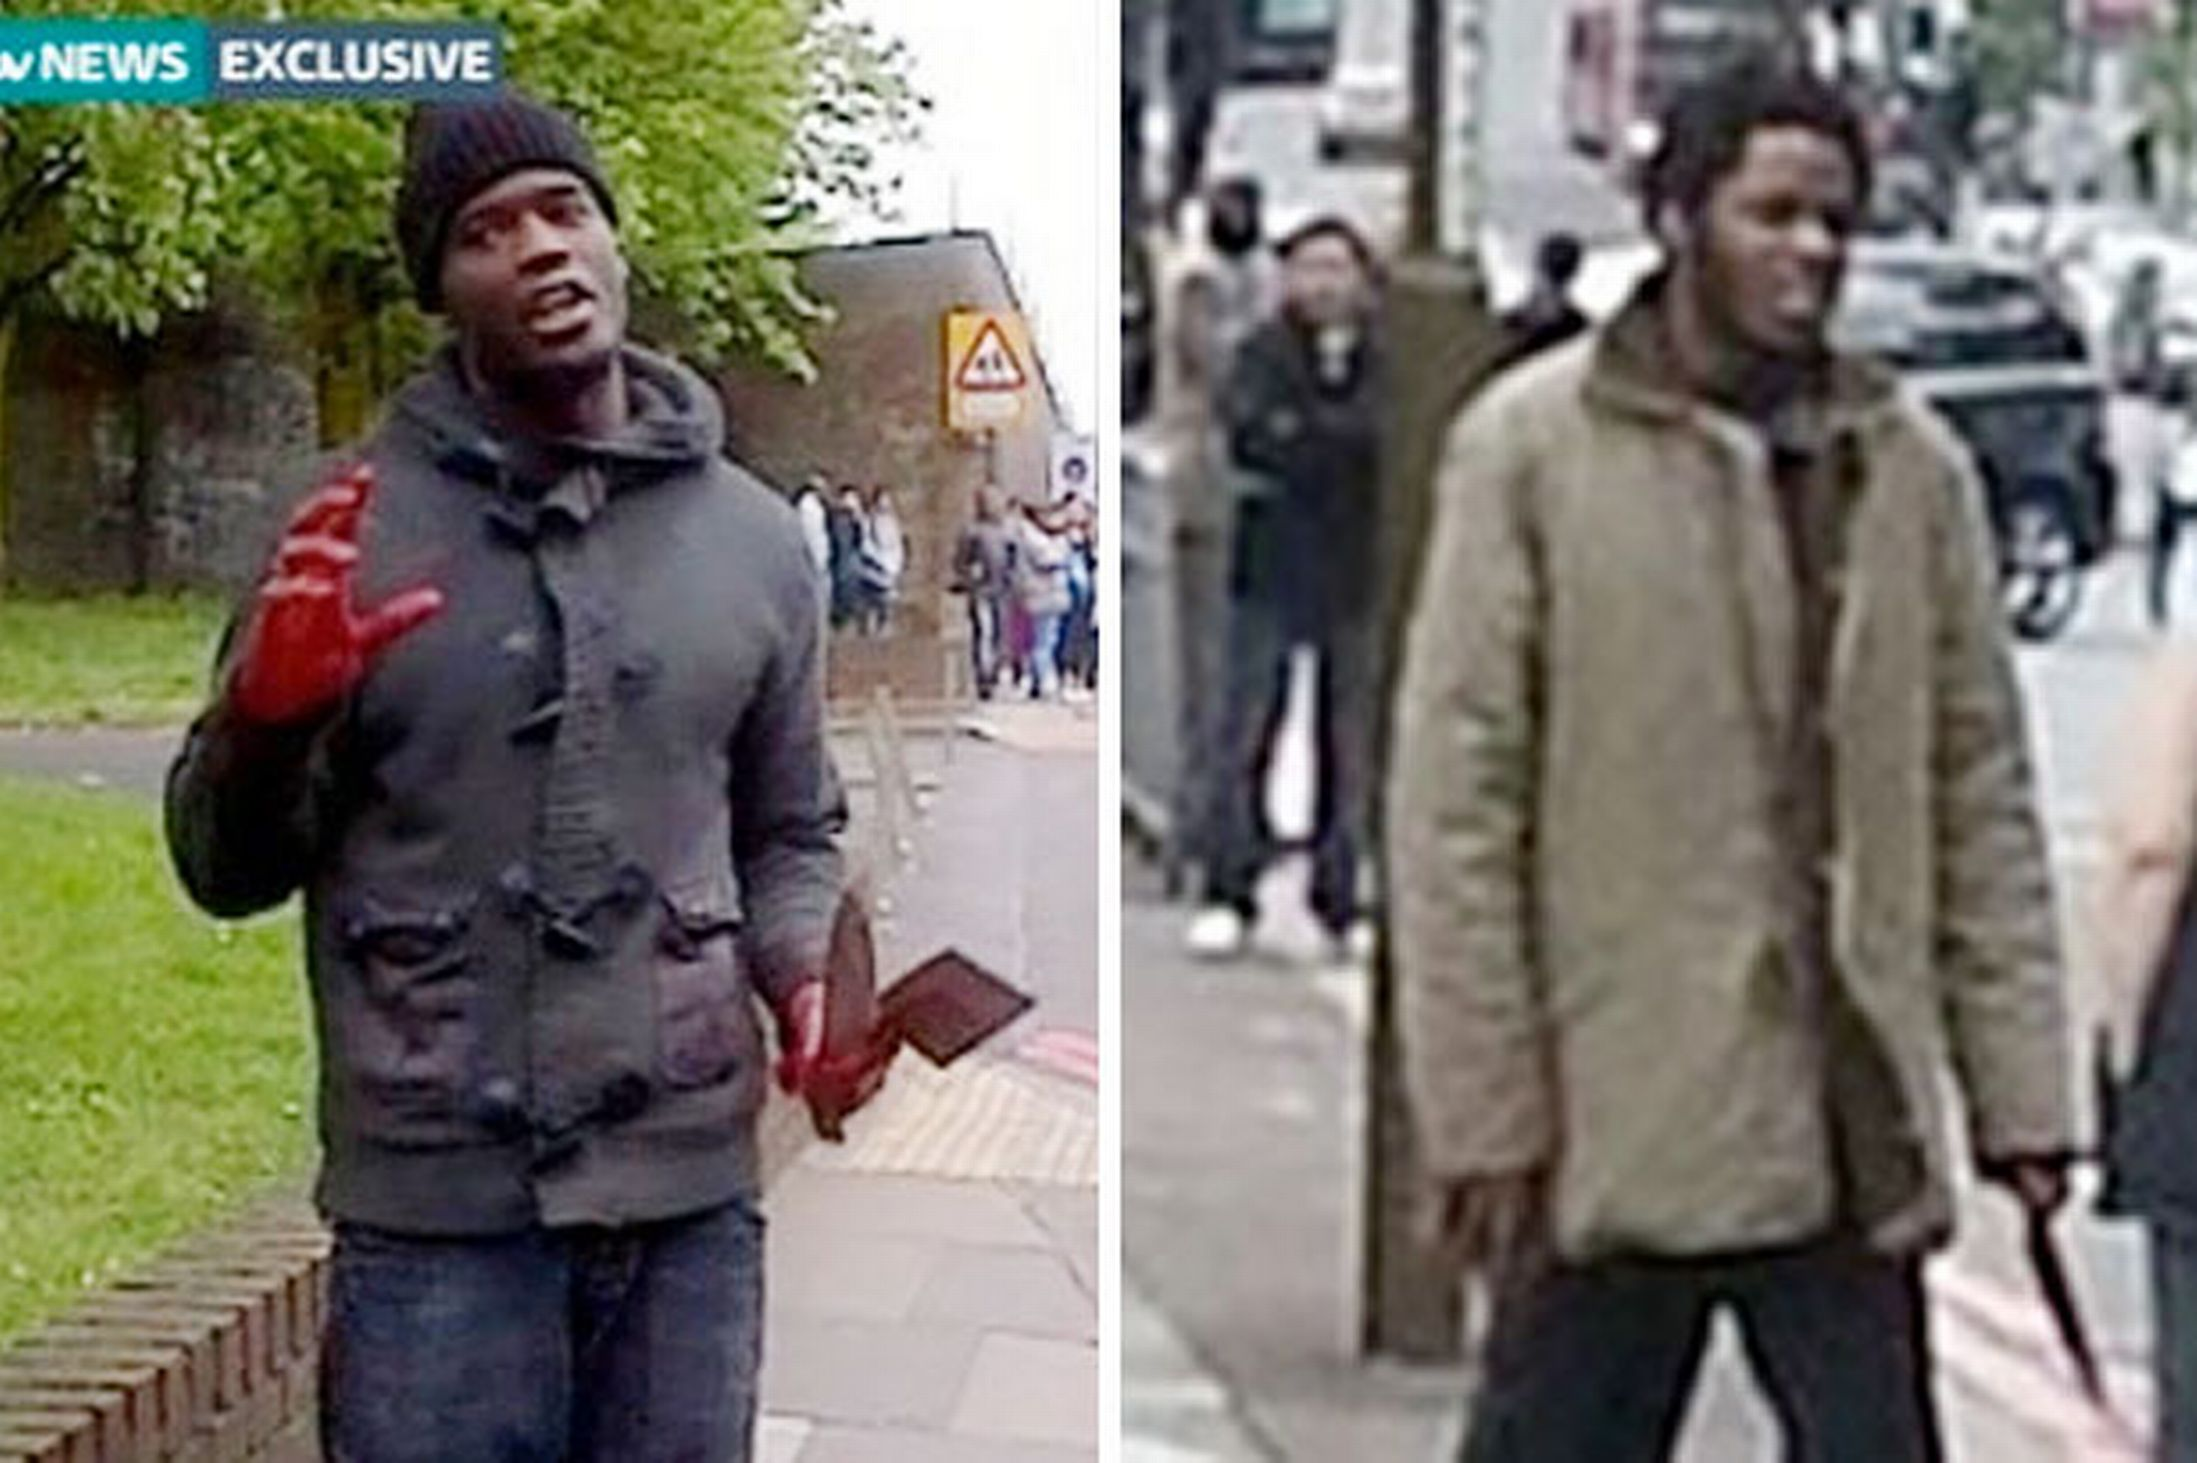 British Soldier Hacked to Death in London Street